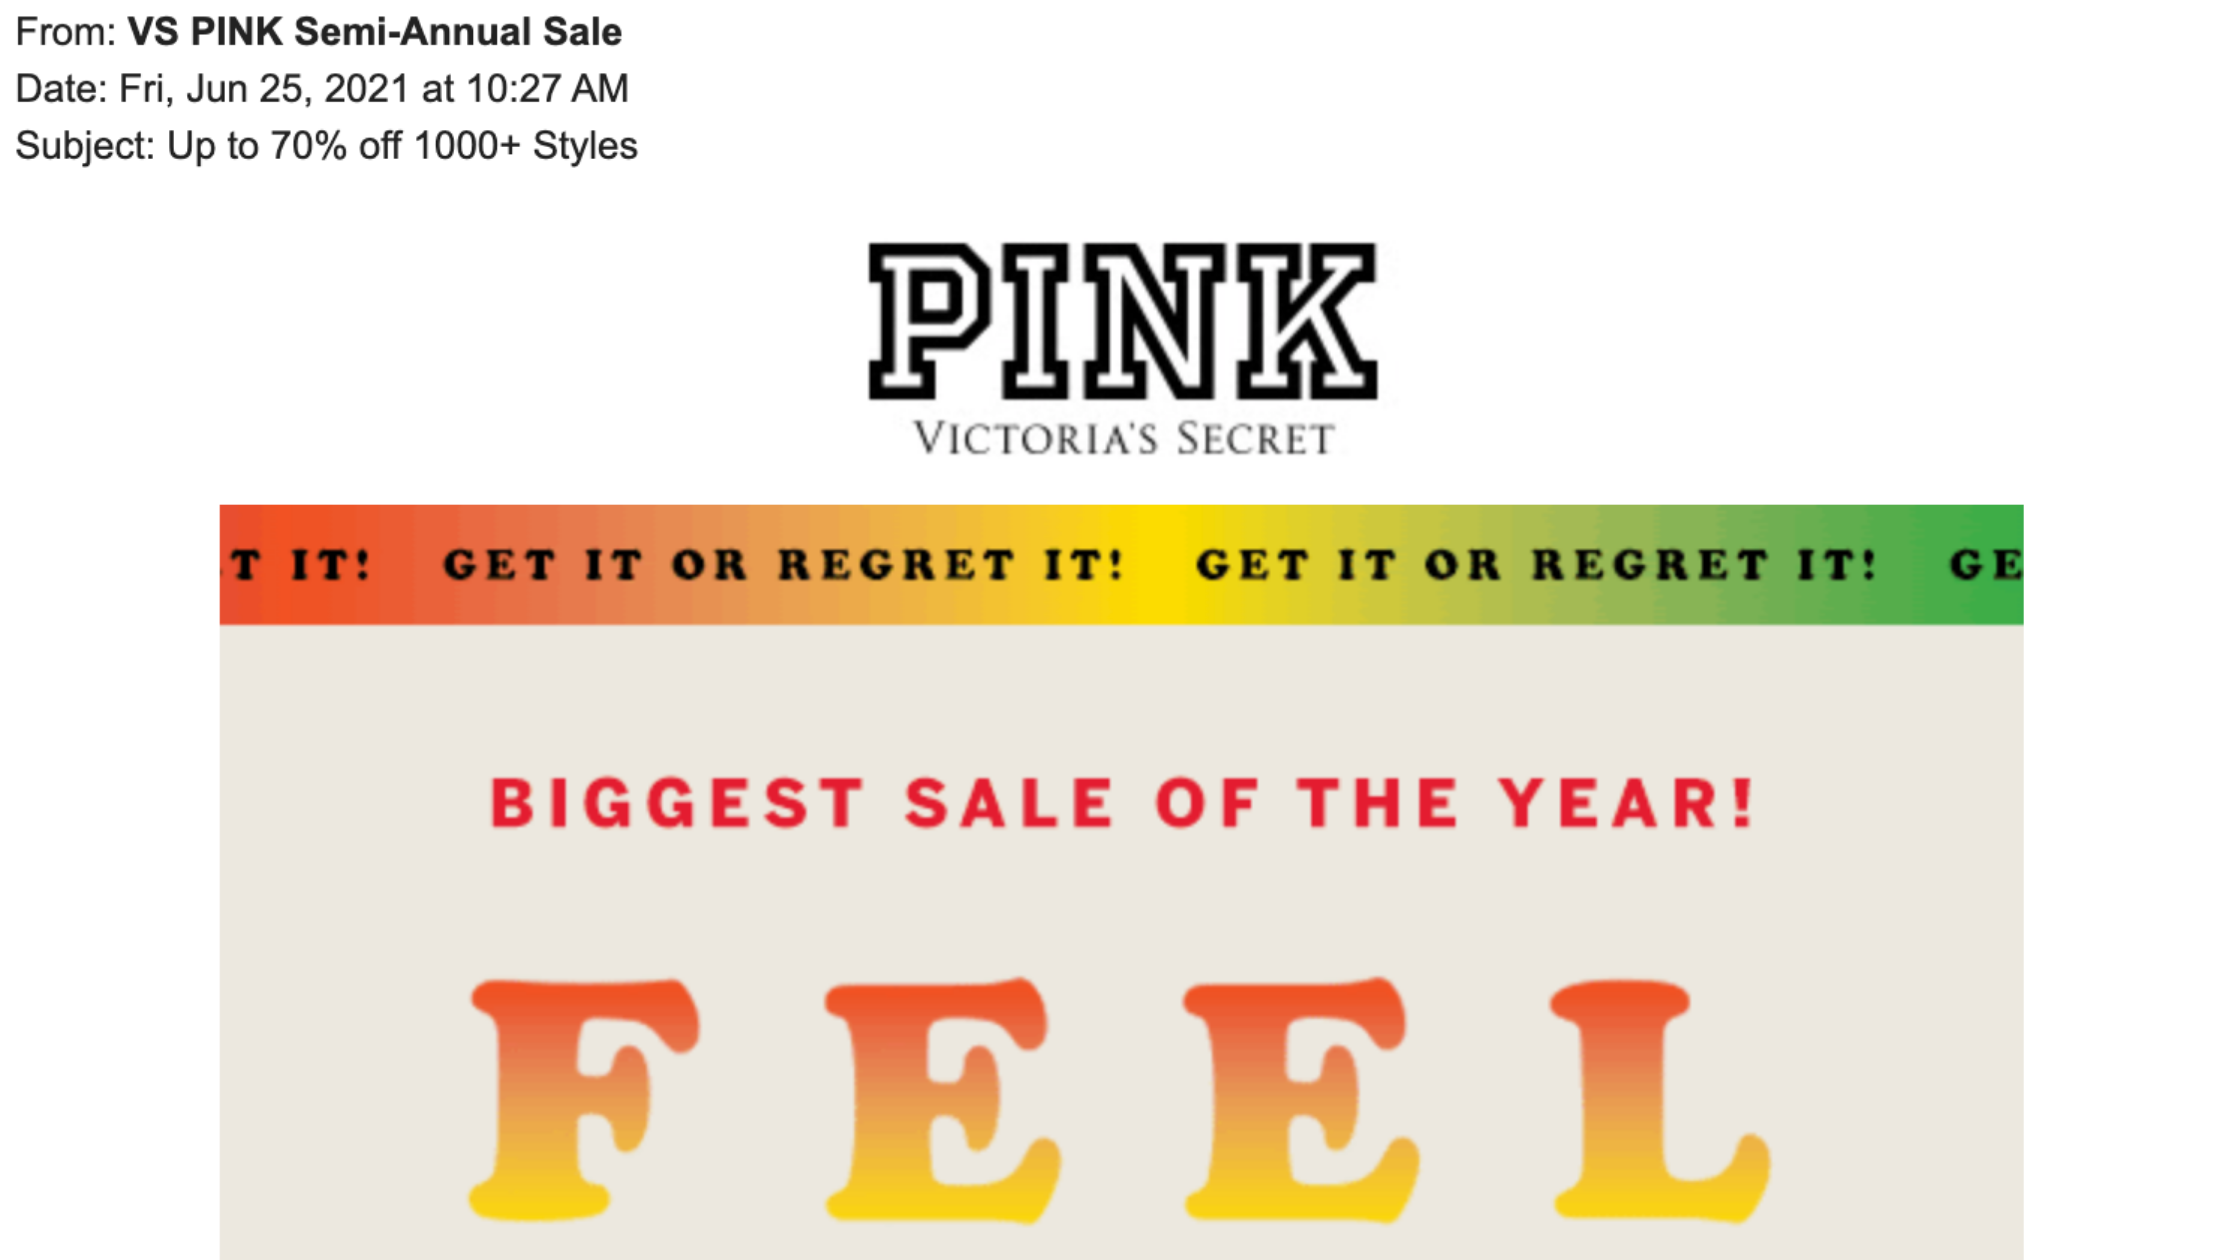 VS PINK Email.